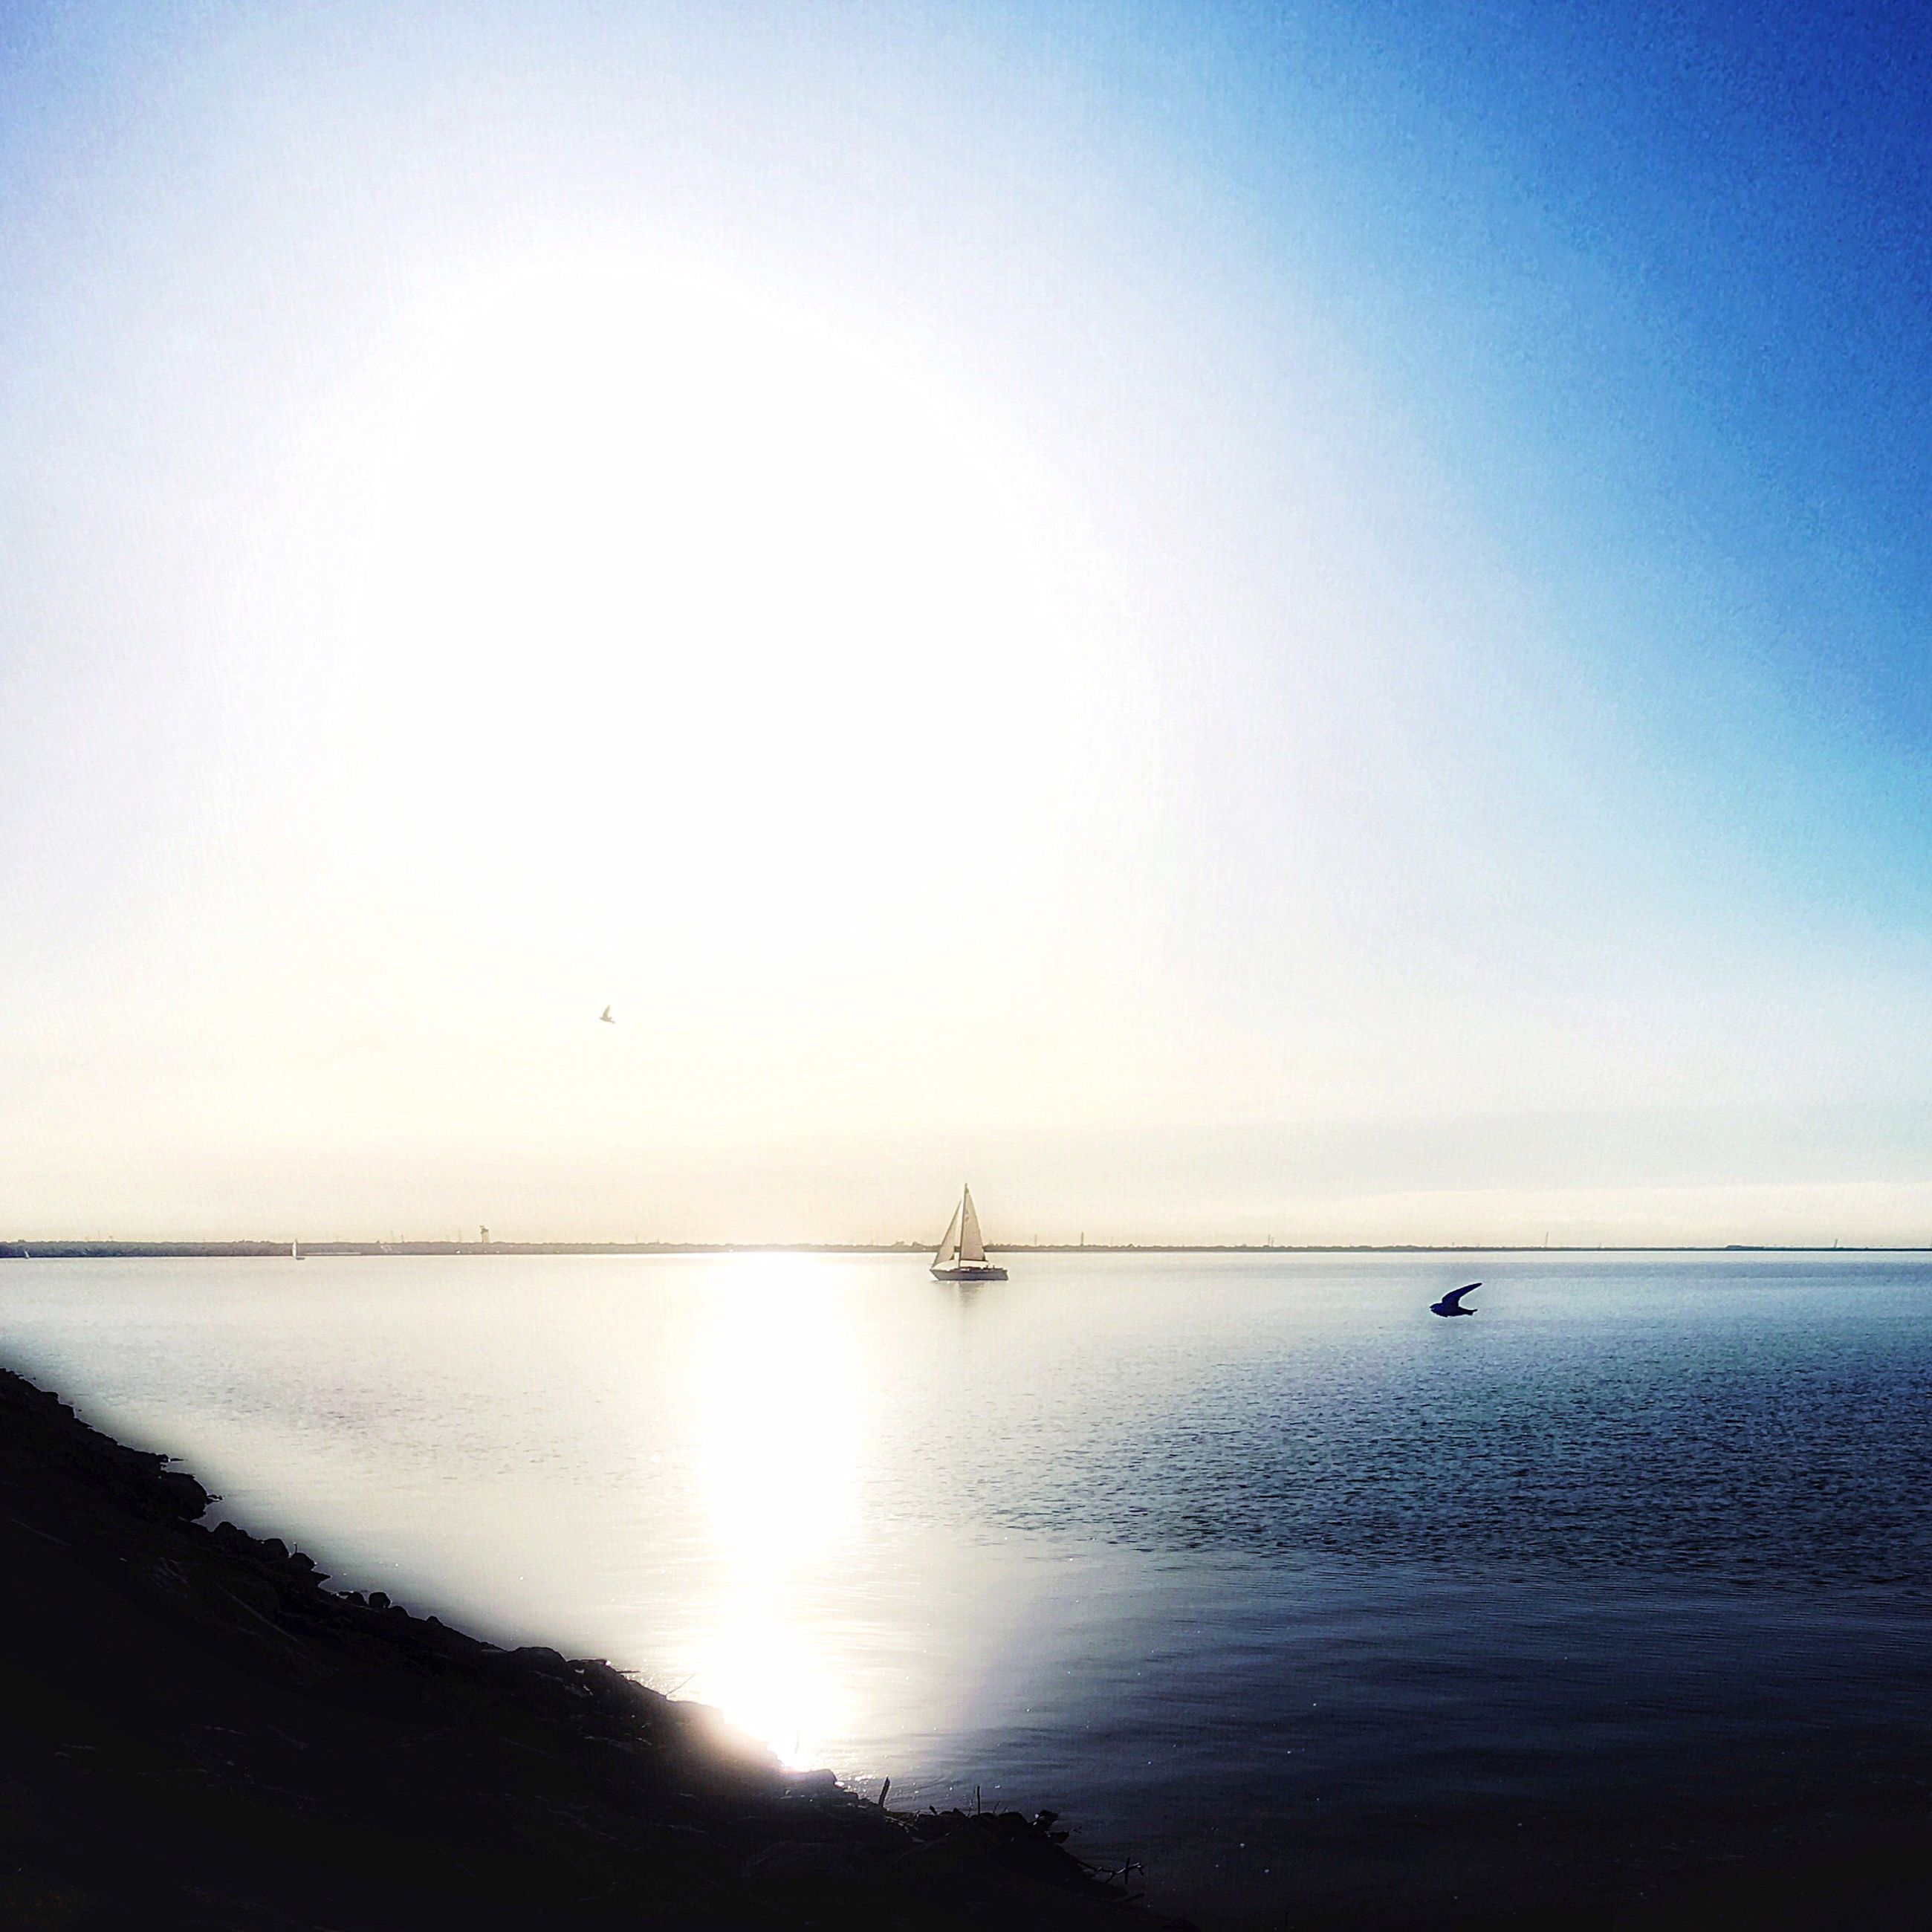 water, sea, clear sky, horizon over water, tranquil scene, tranquility, sun, copy space, transportation, scenics, nautical vessel, reflection, beauty in nature, nature, mode of transport, waterfront, boat, blue, idyllic, sunlight